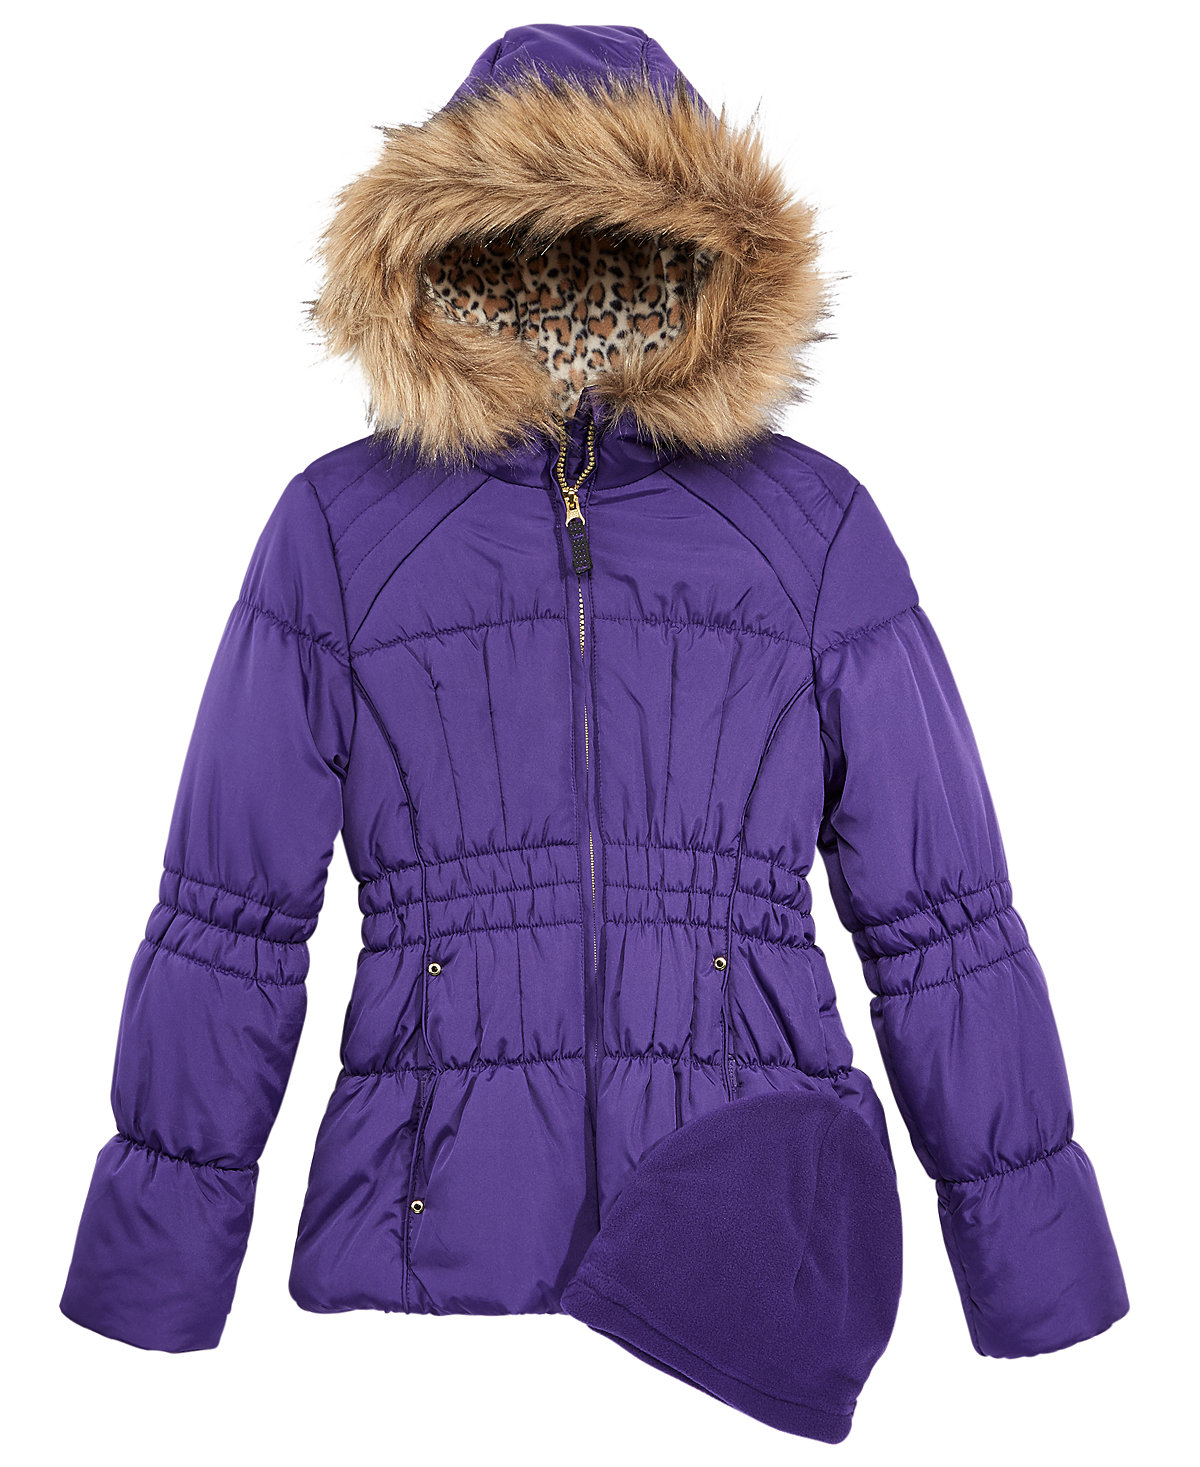 592ae6383 Tiffany s Online Finds and Deals  Kids Jackets and Coats Sale under  25!